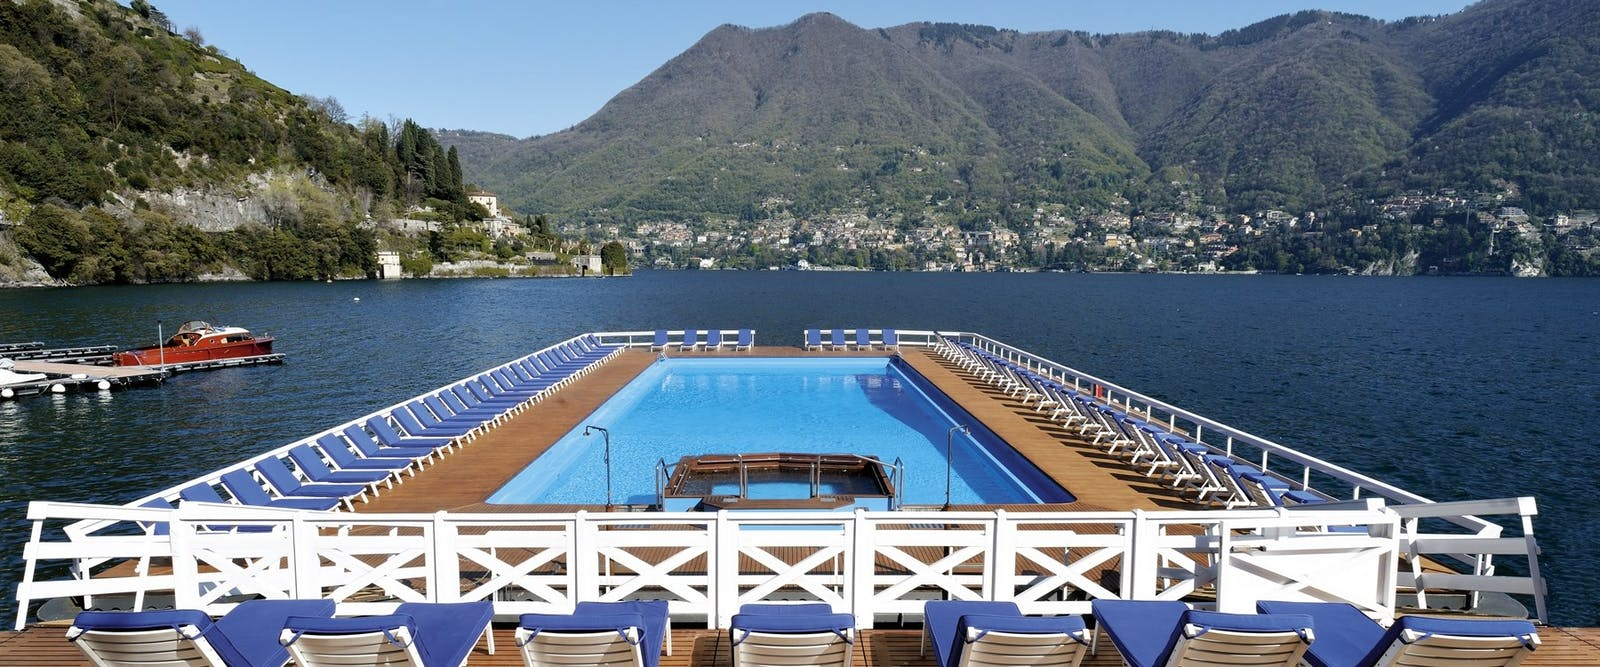 Floating Swimming Pool at Villa D'Este, Lake Como, Italy